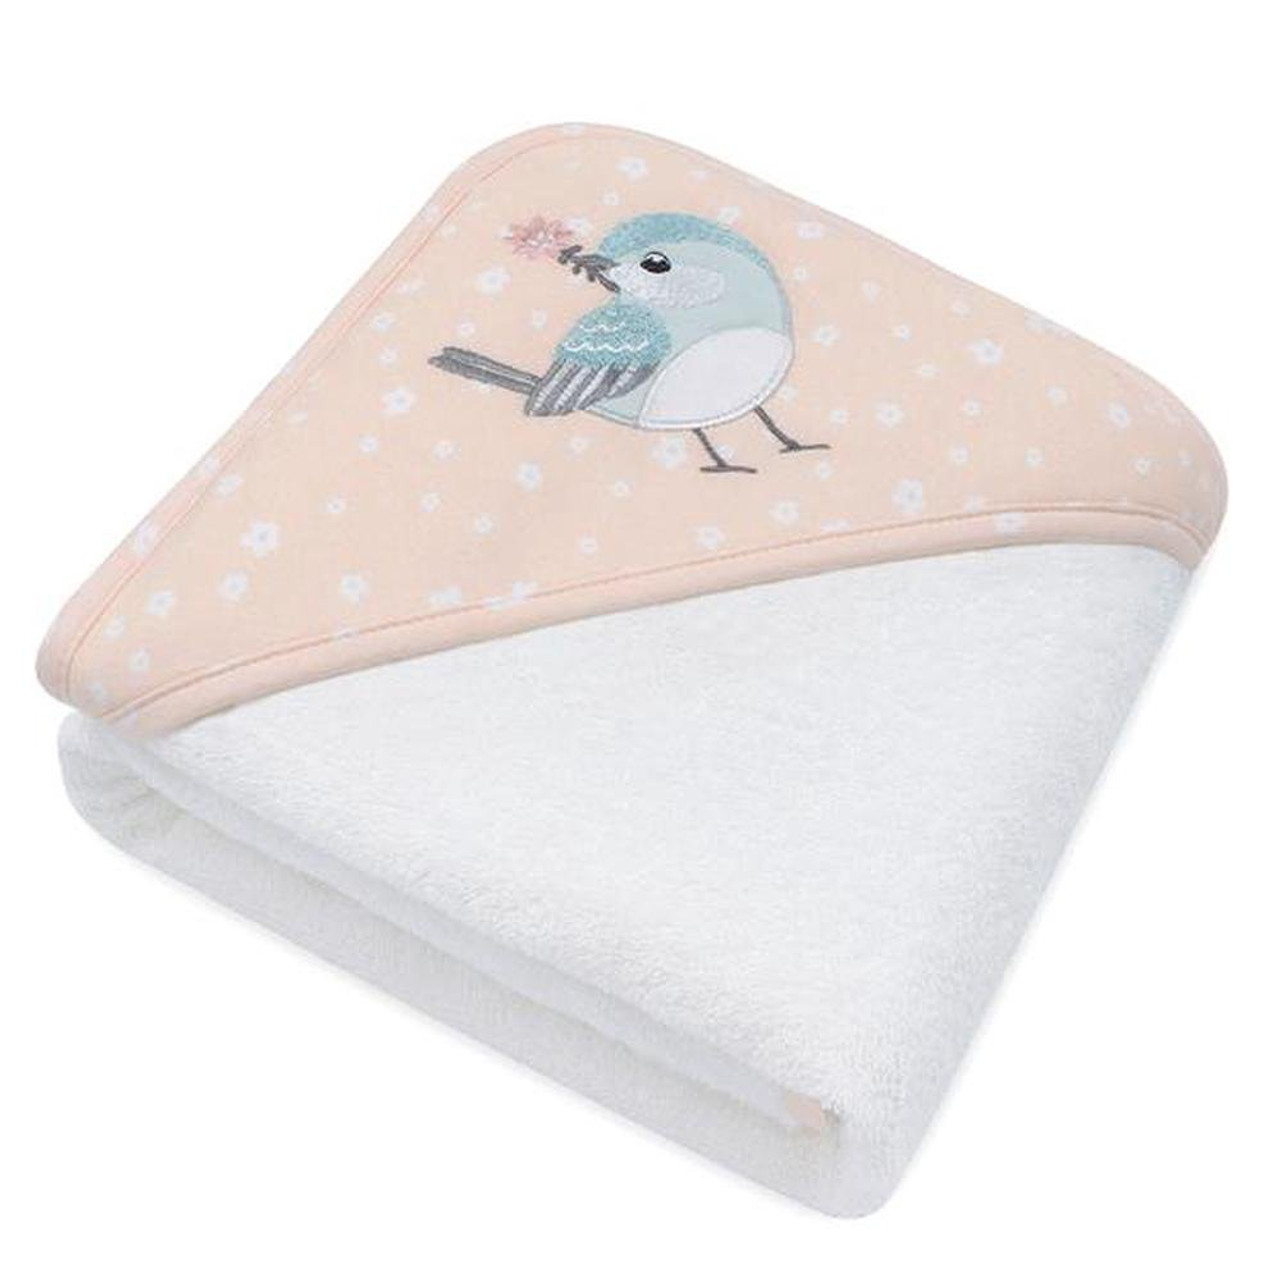 Living Textiles Hooded Towel Ava Birds at Baby Barn Discounts